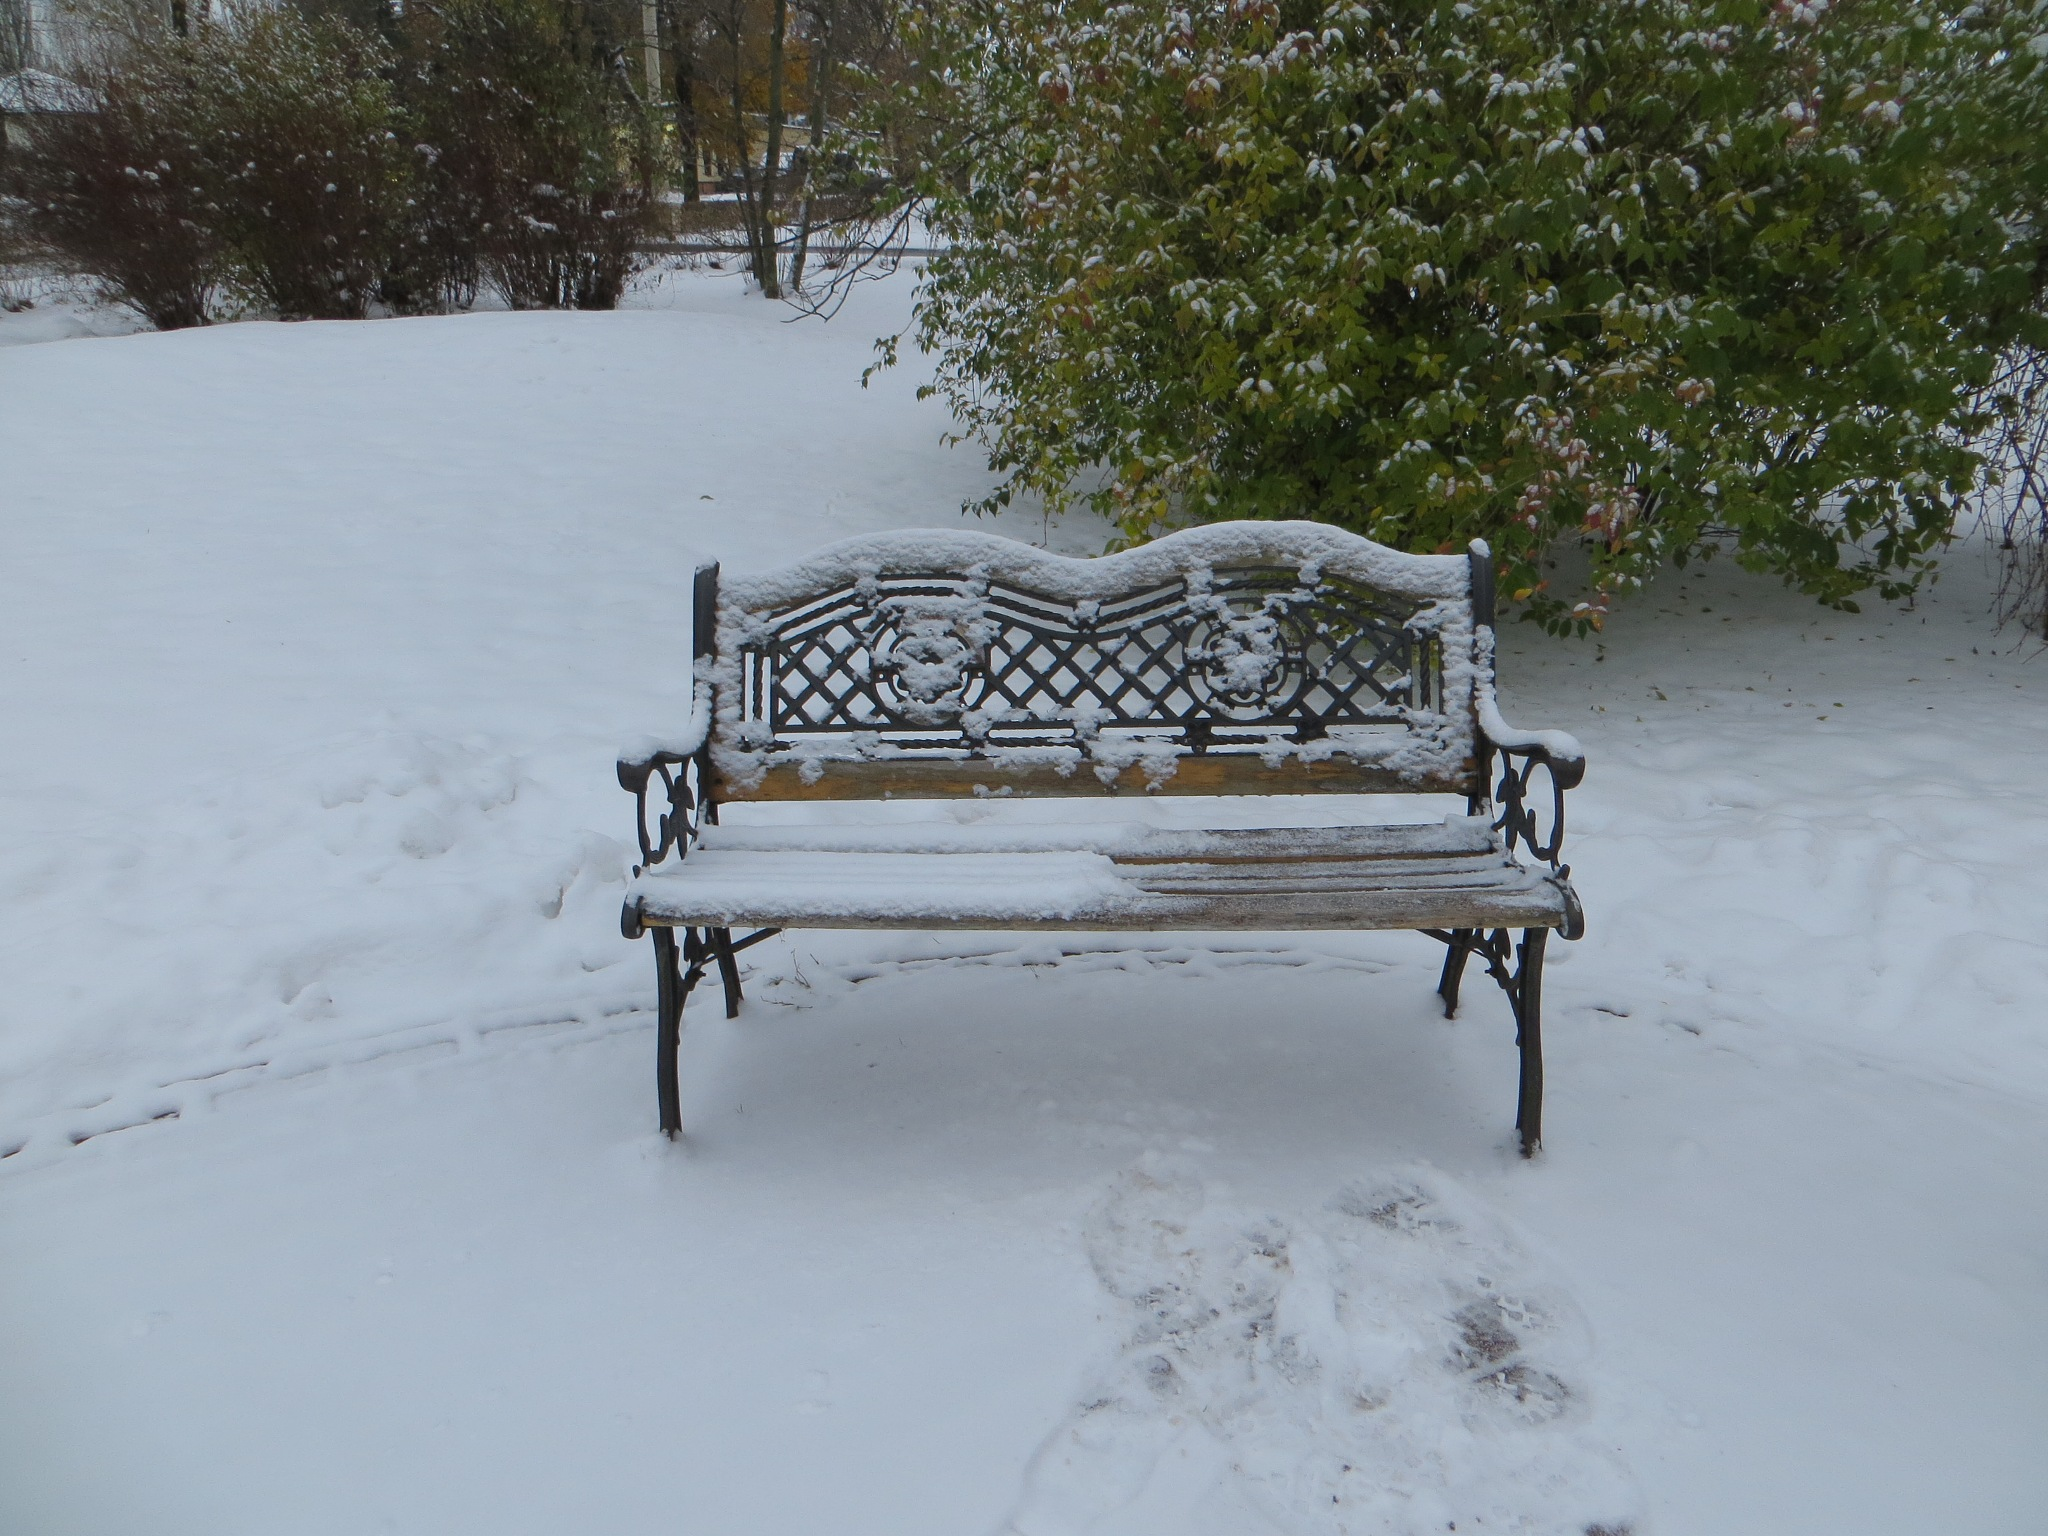 Bench loneliness. by Yurkoff Wladimir